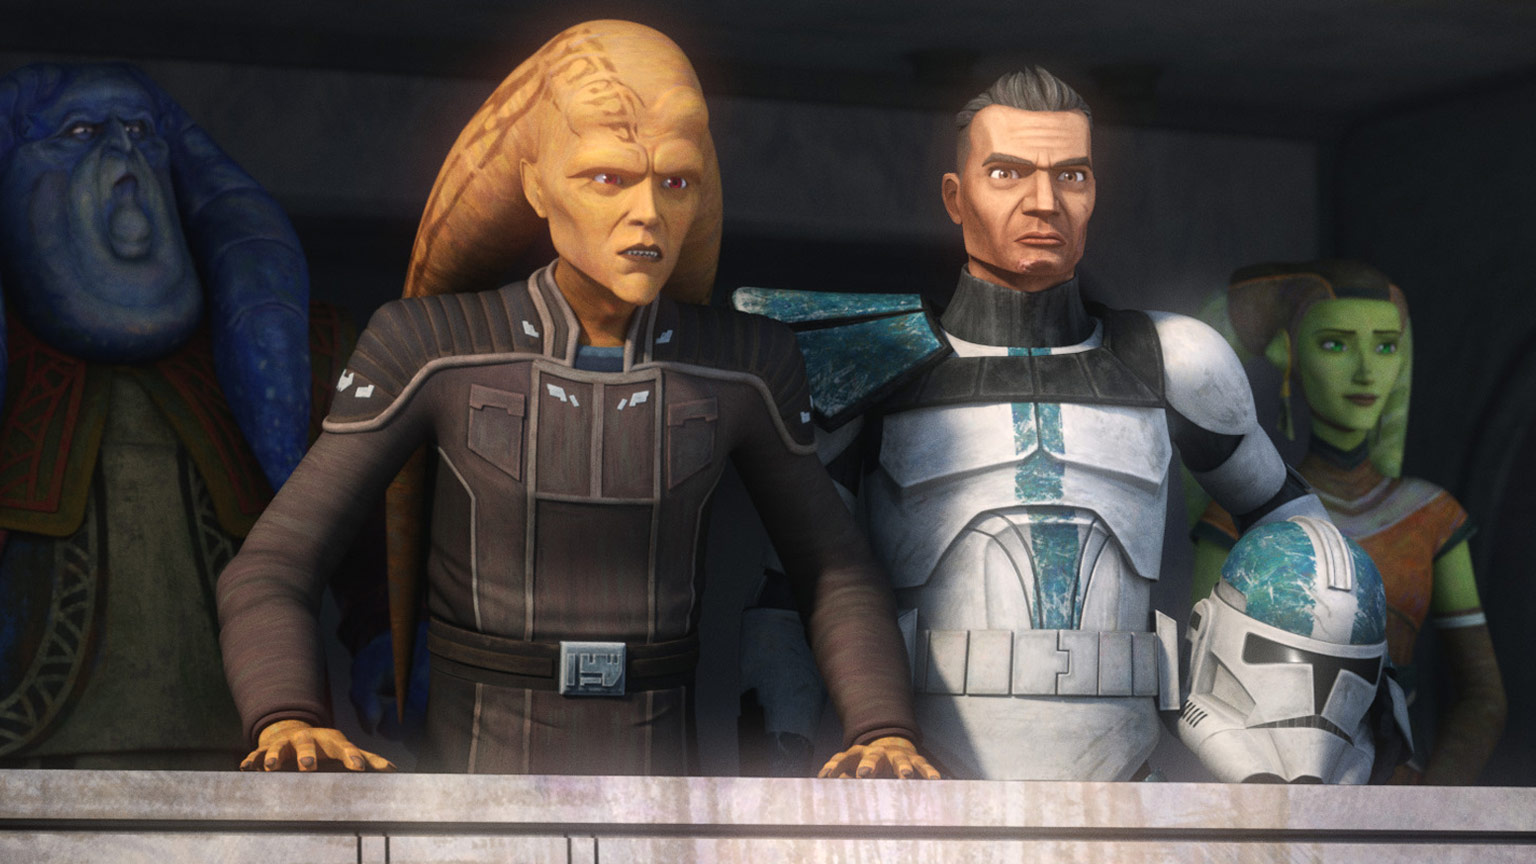 Cham Syndulla and others in Star Wars: The Bad Batch.